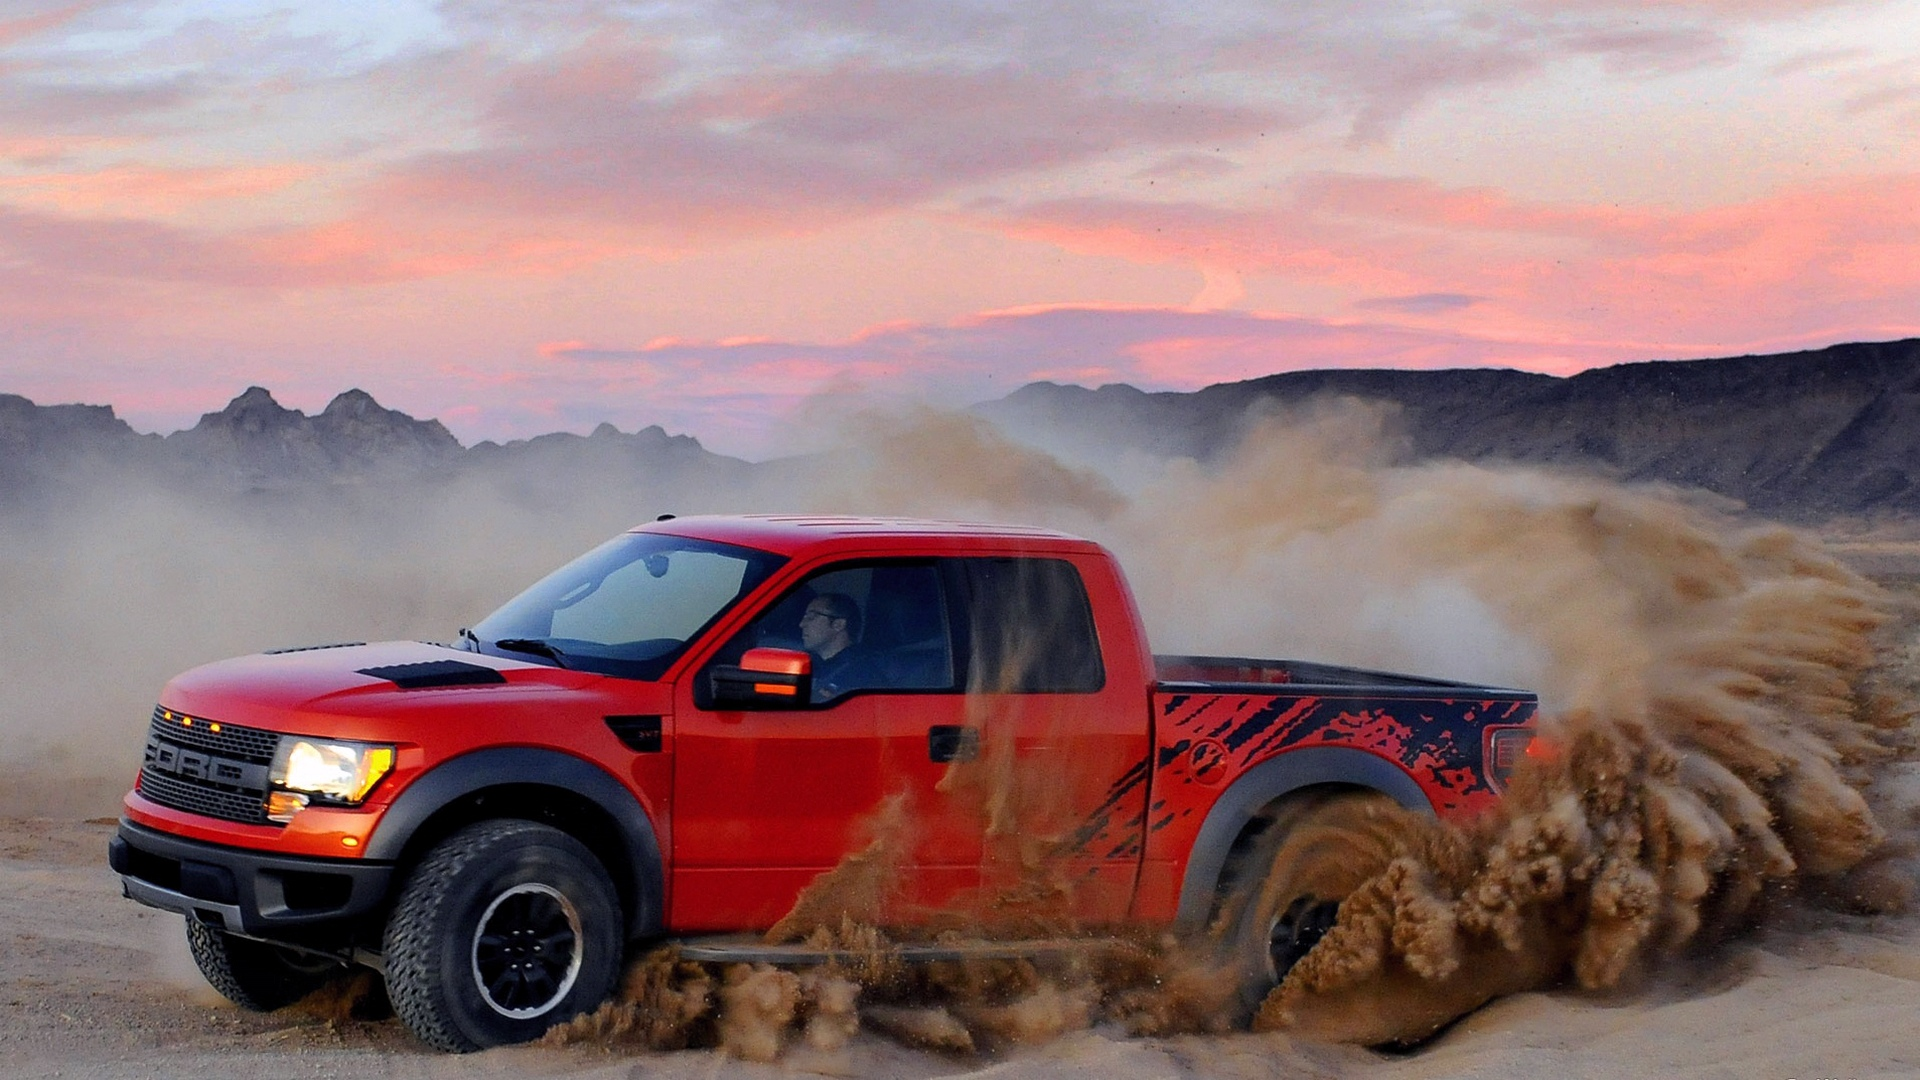 Cool Ford Truck Backgrounds